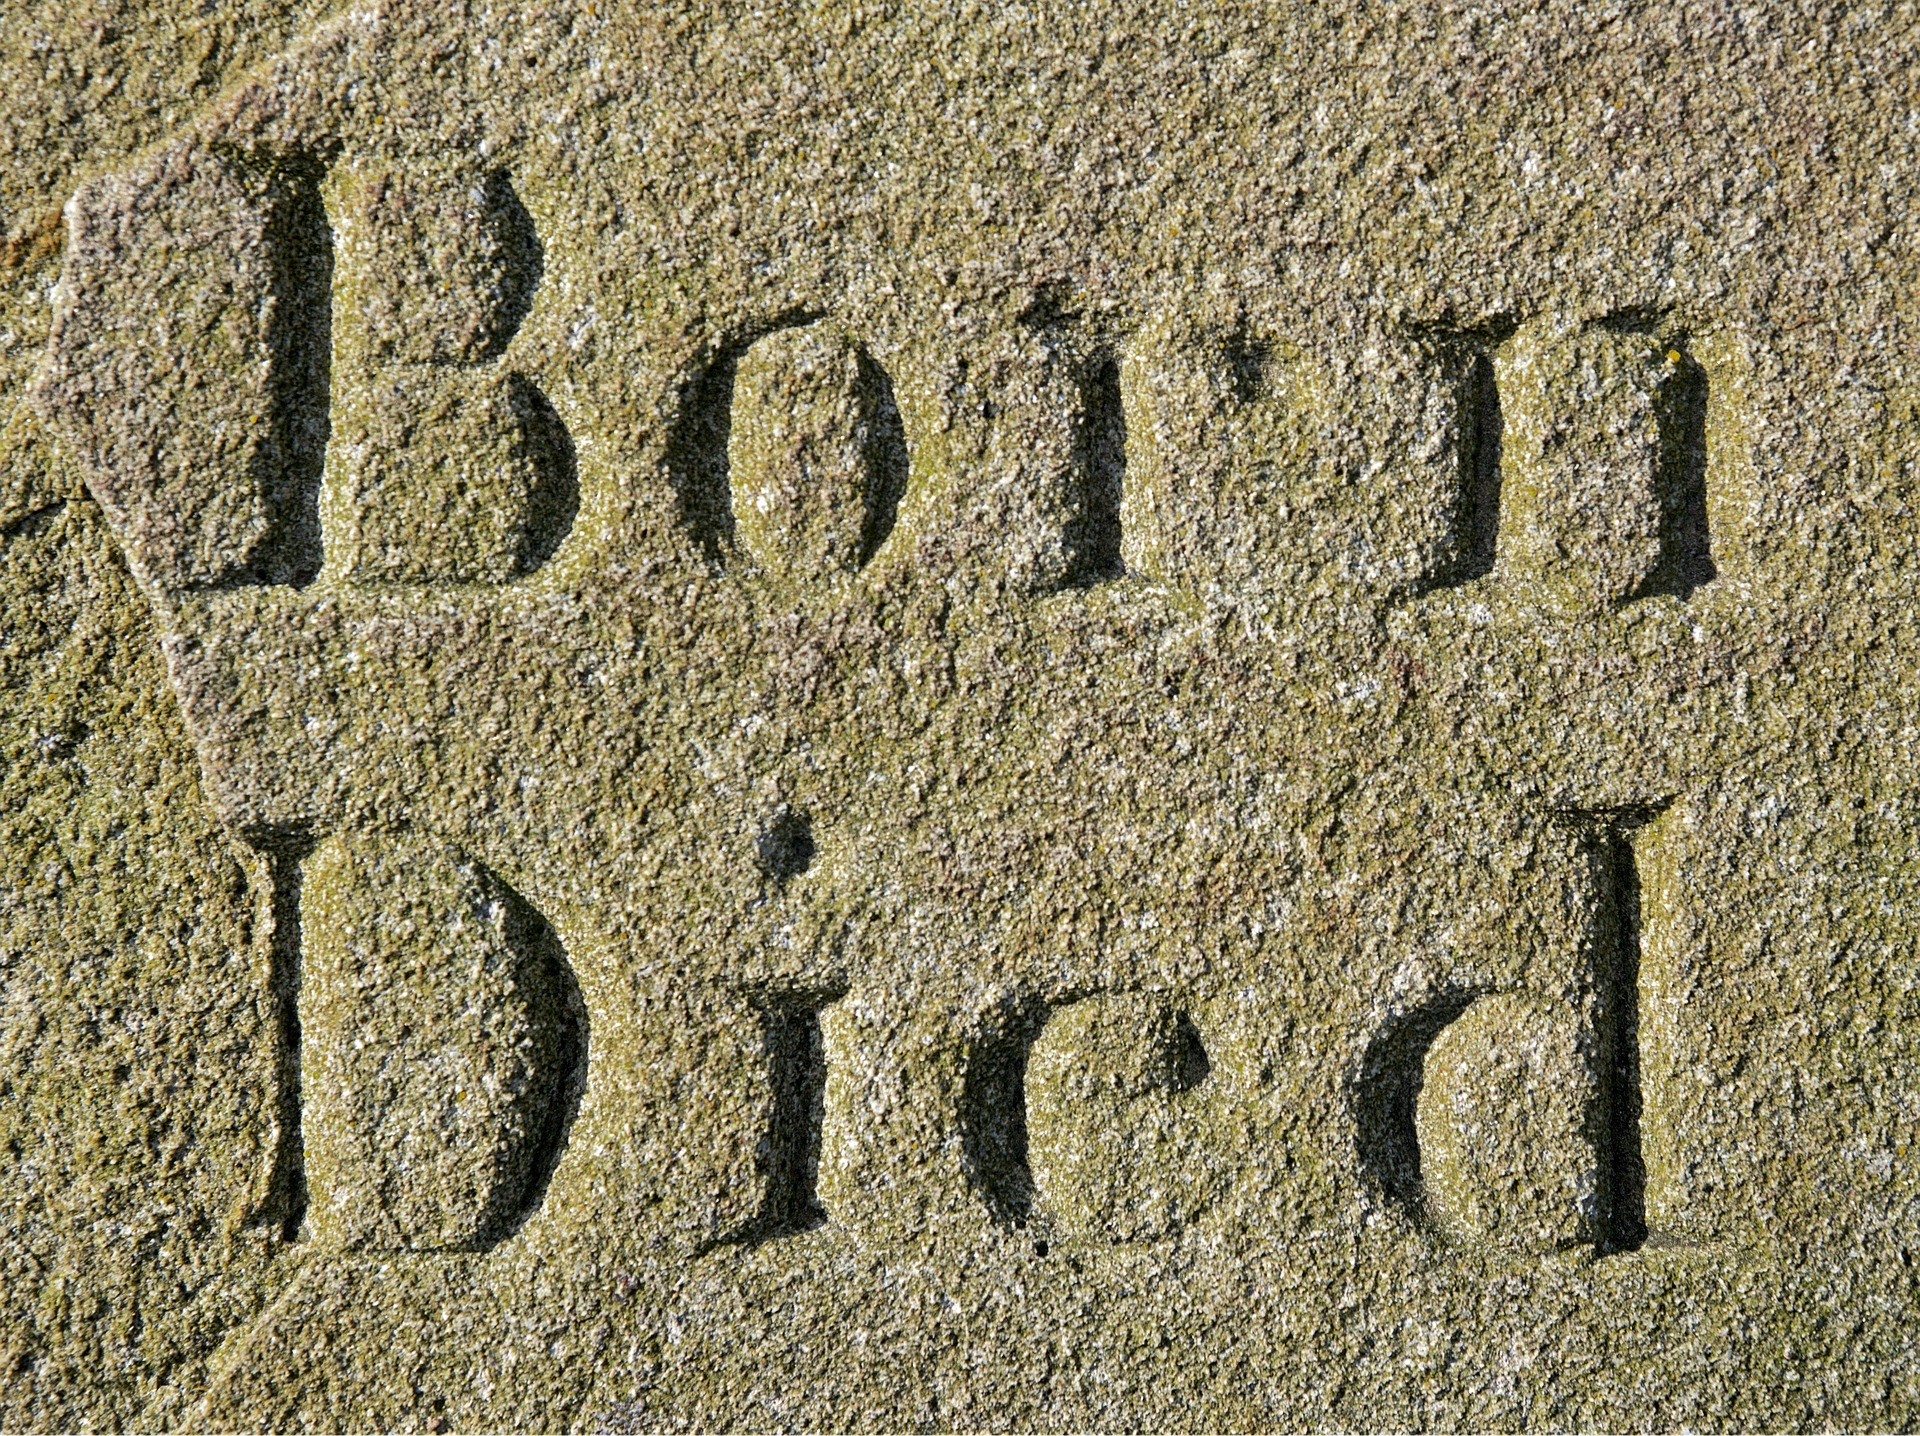 Born - Died Beitragsbild zu Martin Luther - Biographisches